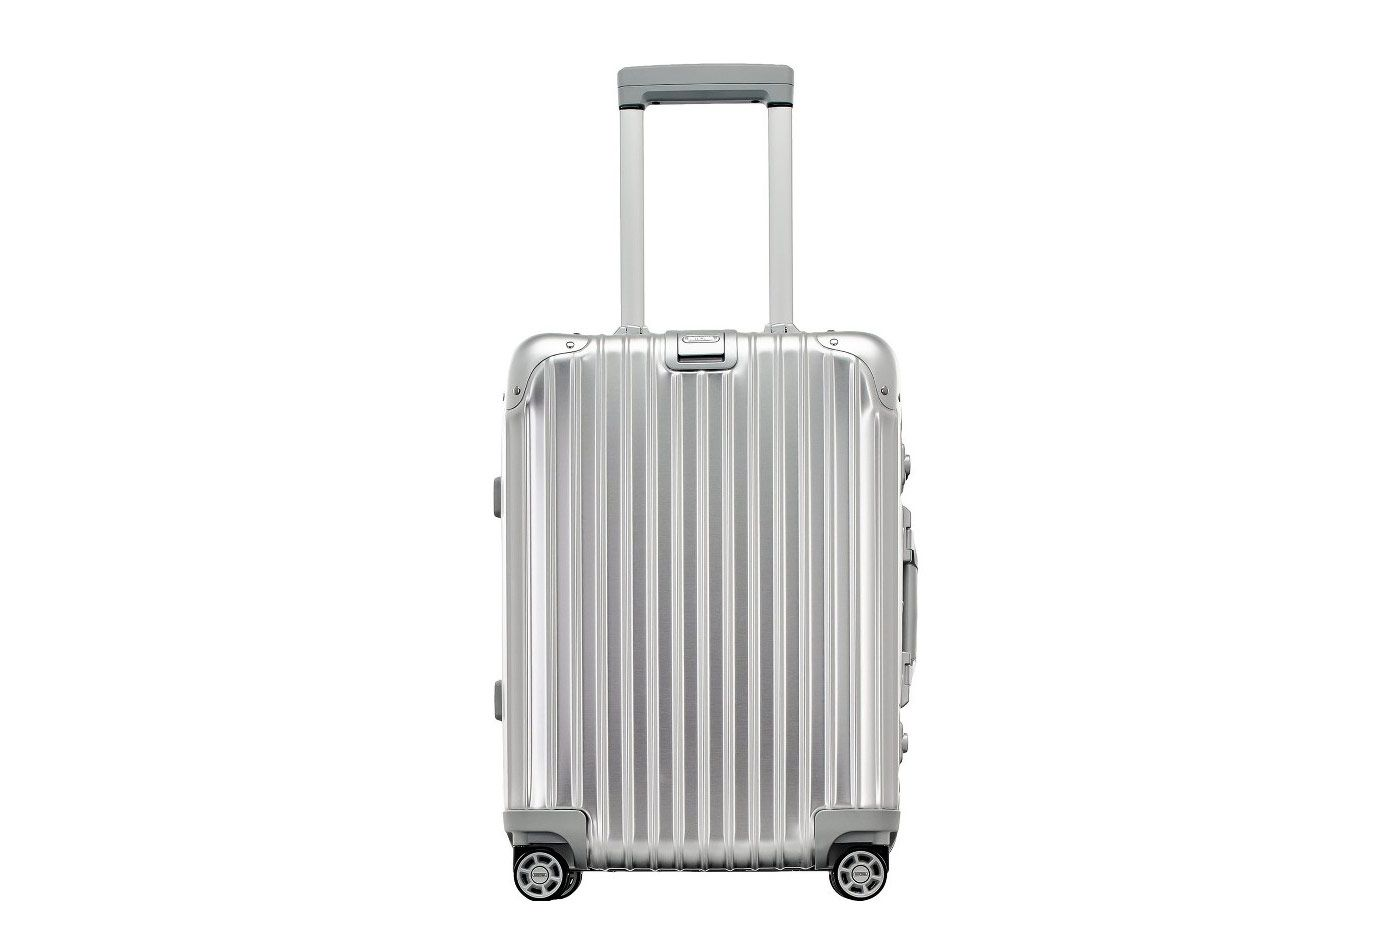 Rimowa Topas 22-Inch Cabin Carry-on